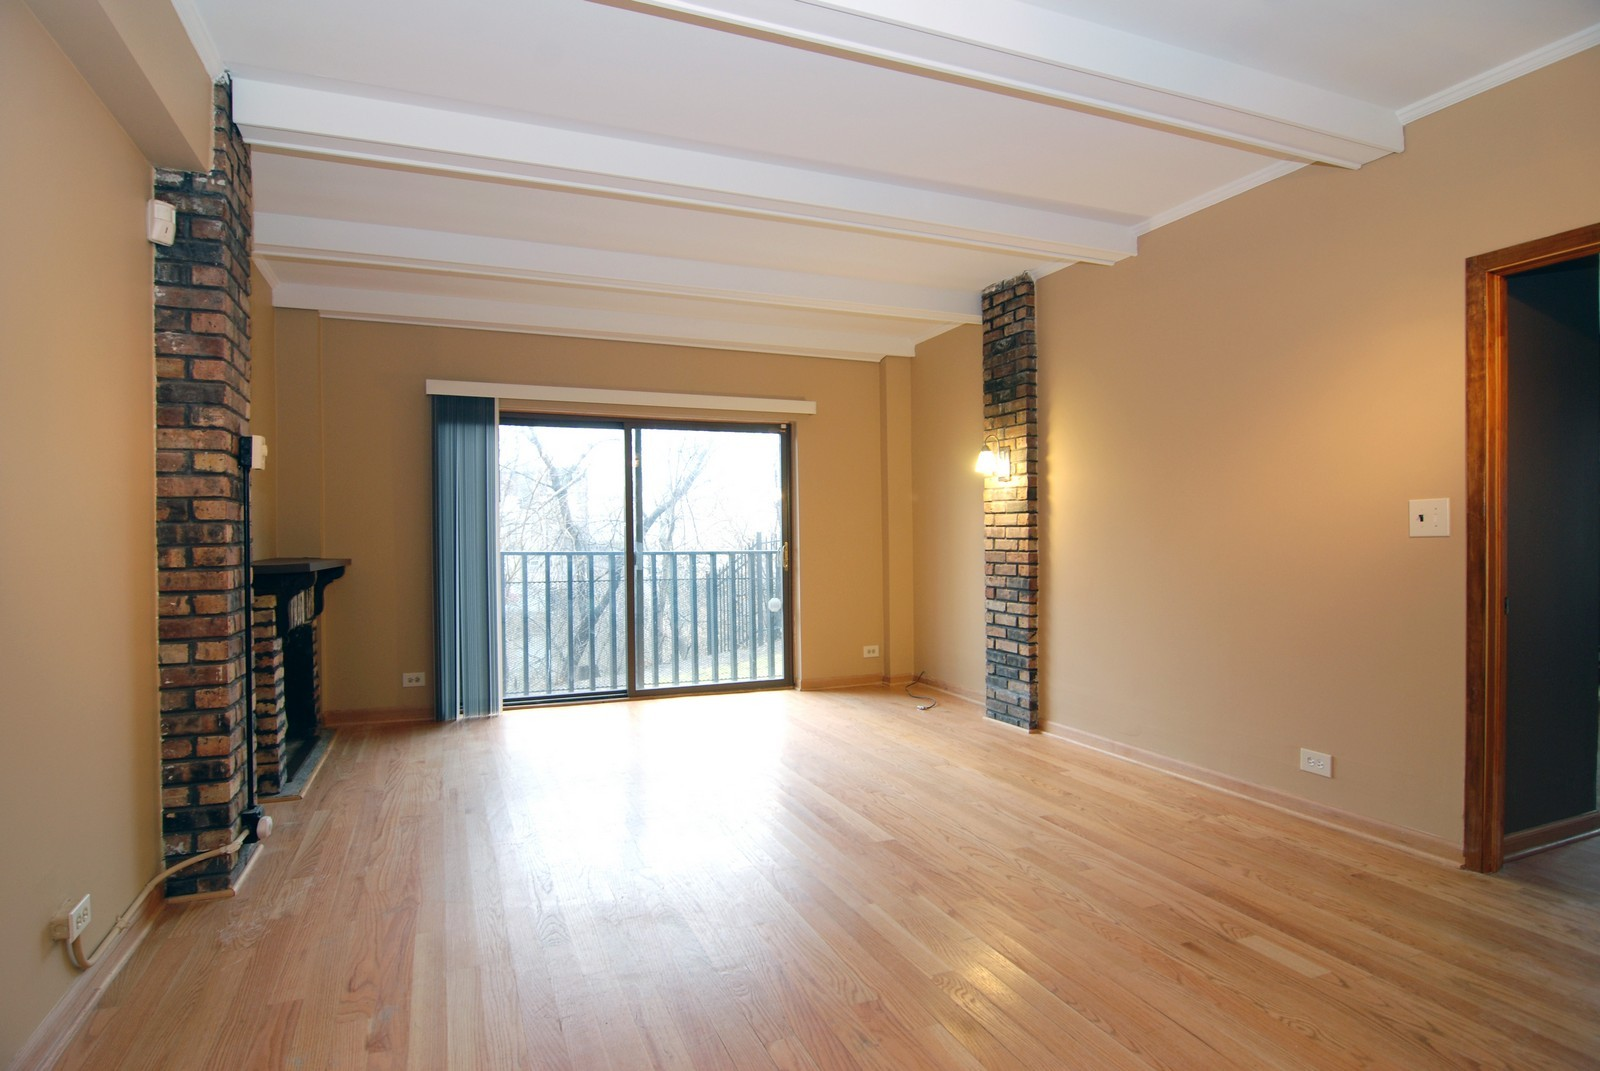 Real Estate Photography - 2839 W Lawrence, Chicago, IL, 60625 - Living Room